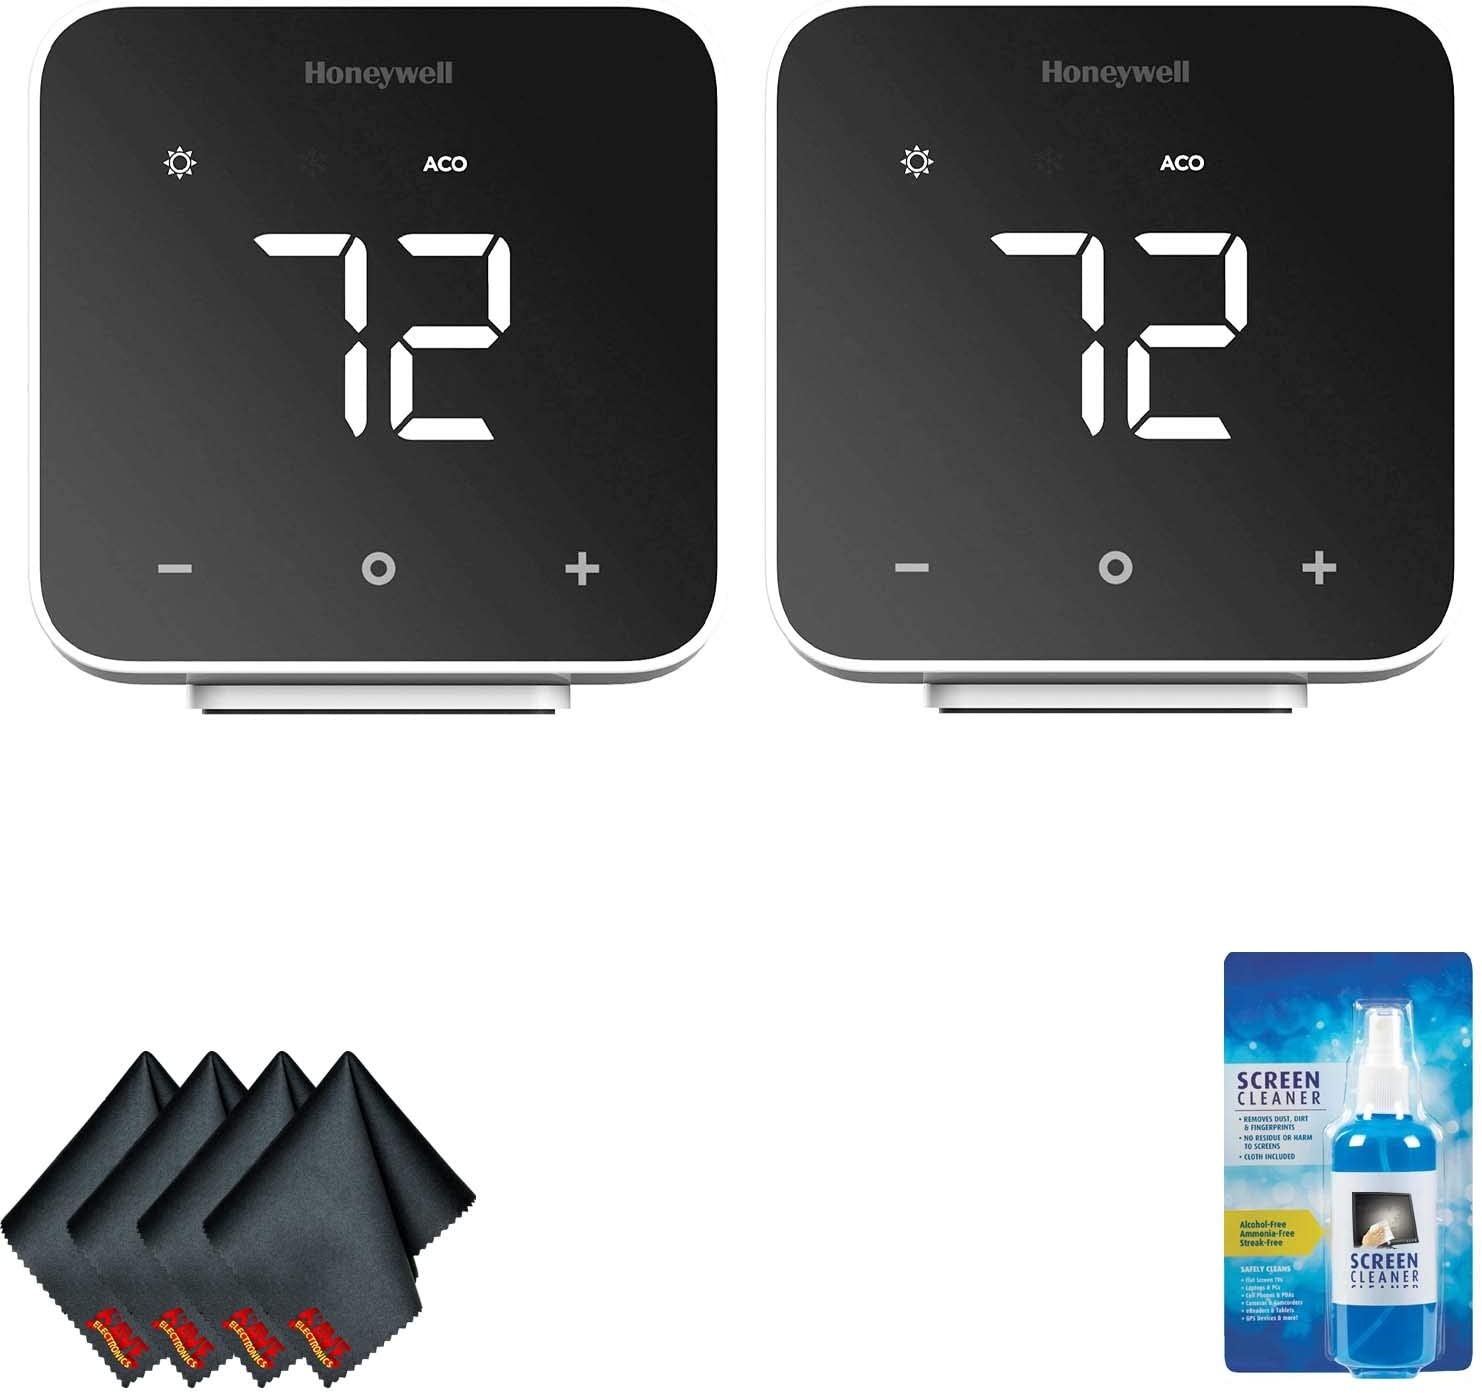 Honeywell Home D6 Thermostat (Black) (2-Pack) with Screen Cleaning Kit